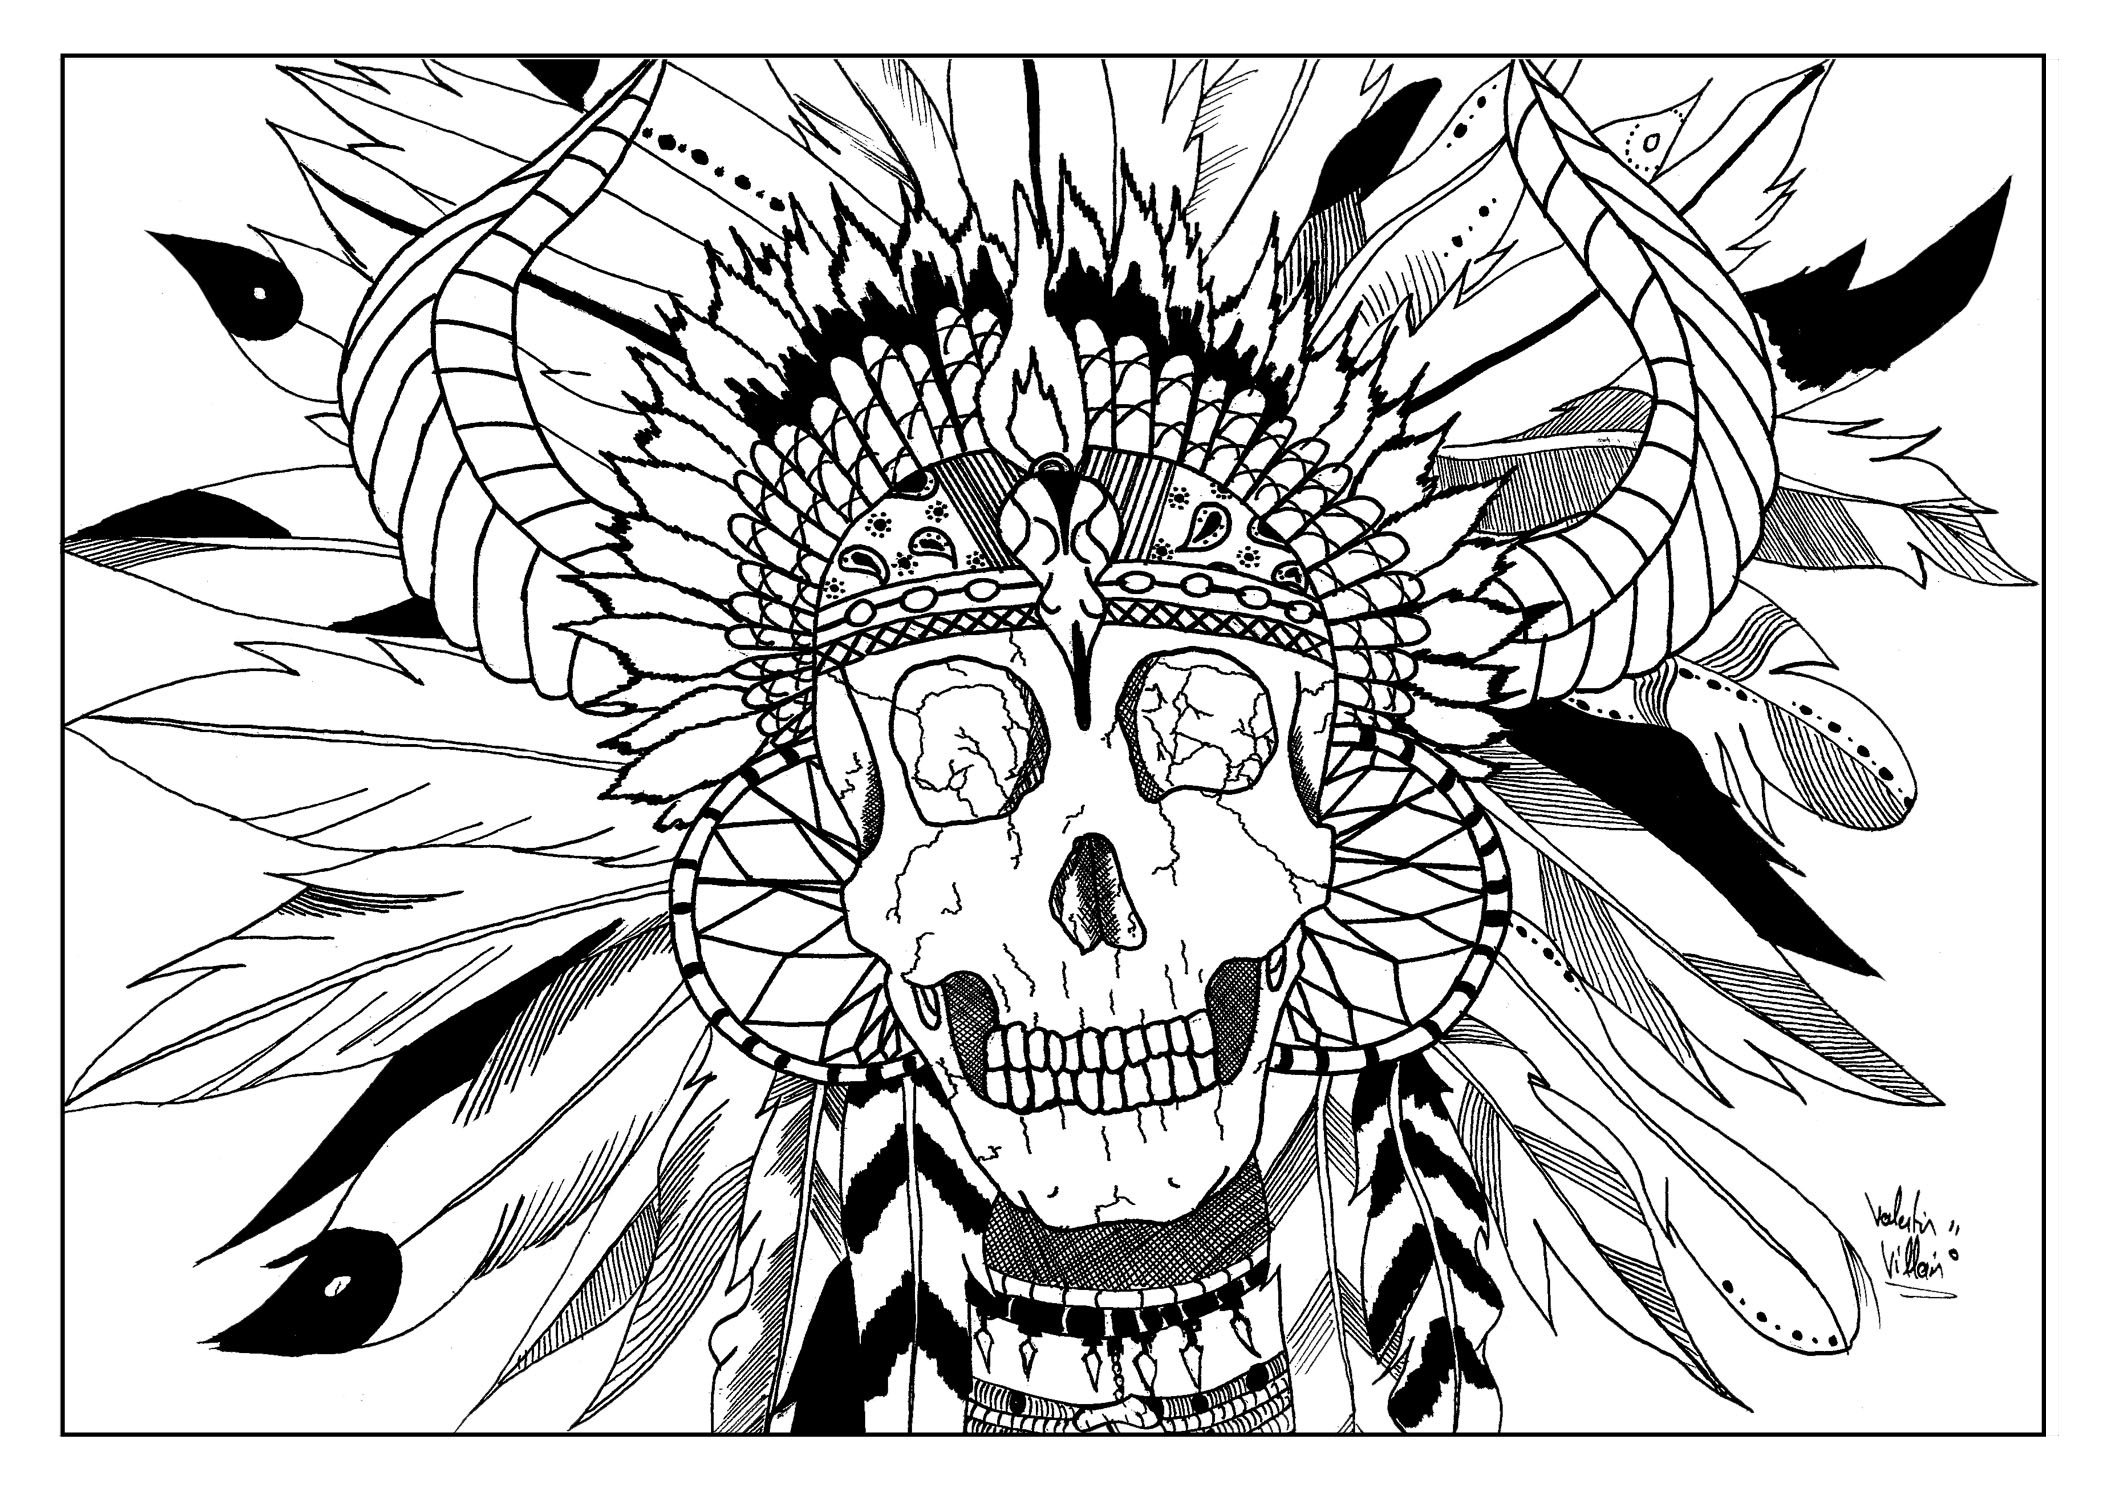 coloring page of a native american skull with a coif waiting to be colored from - Native American Coloring Pages